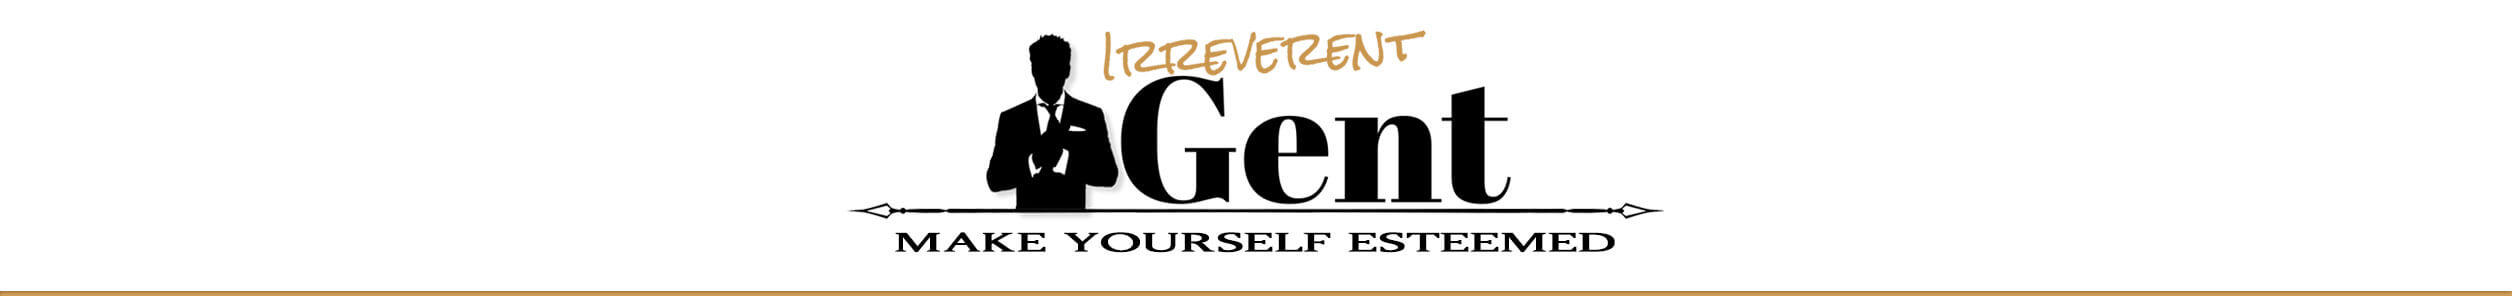 Irreverent Gent | Confidence for the Contemplative Man